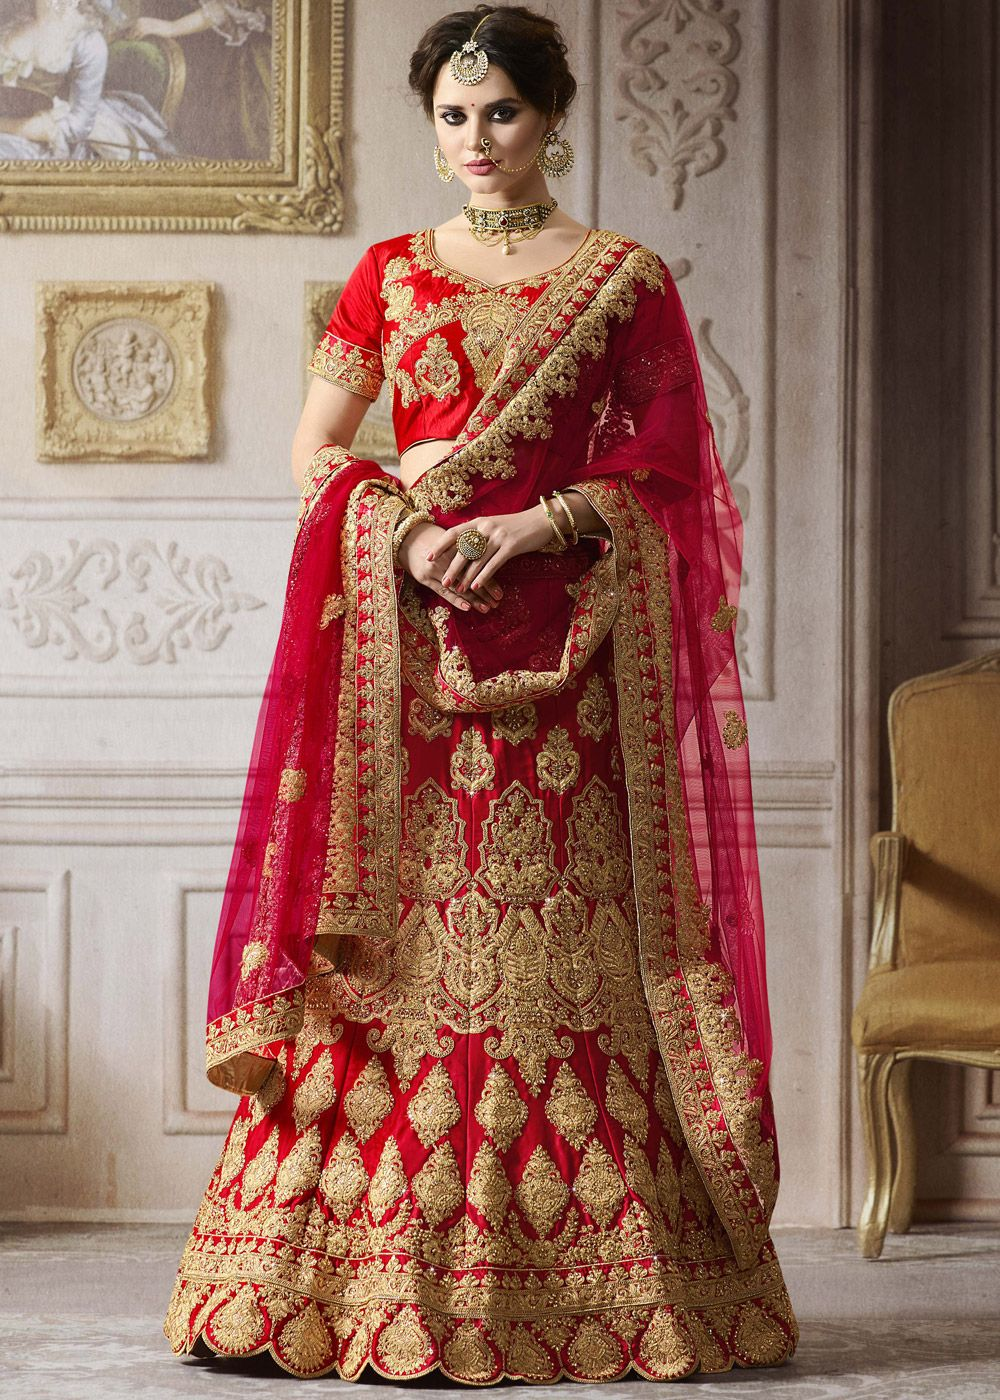 f893e54f66e8 Panash Lehenga - Buy Red Satin Bridal Lehenga Choli with Dupatta online,  Work: Embroidered, Kundan Work, Stone Work, Zari, Color : Red, Occassion :  Bridal, ...